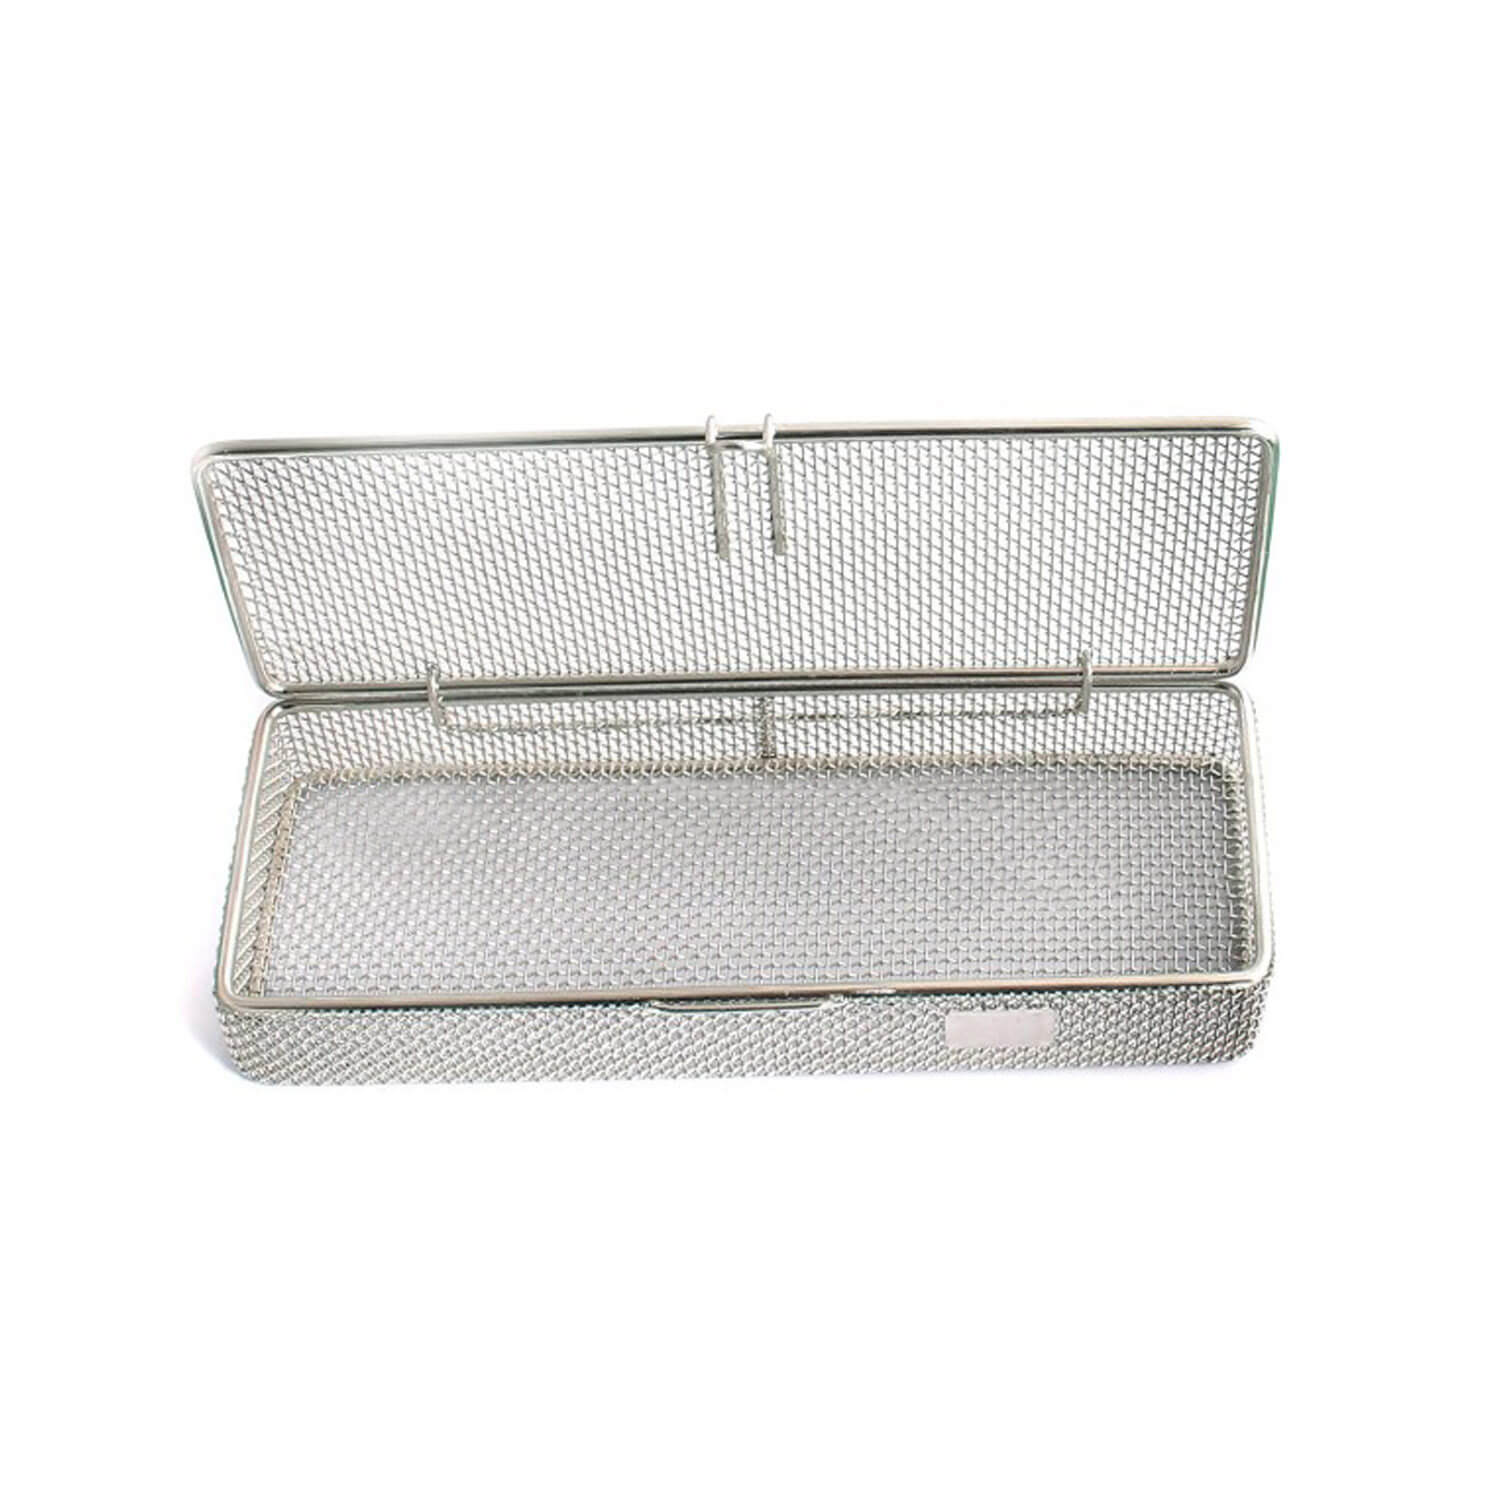 "Sterilization Cassette Tray 9"" X3"" X1"" Perforated Mesh Box Dn-312"